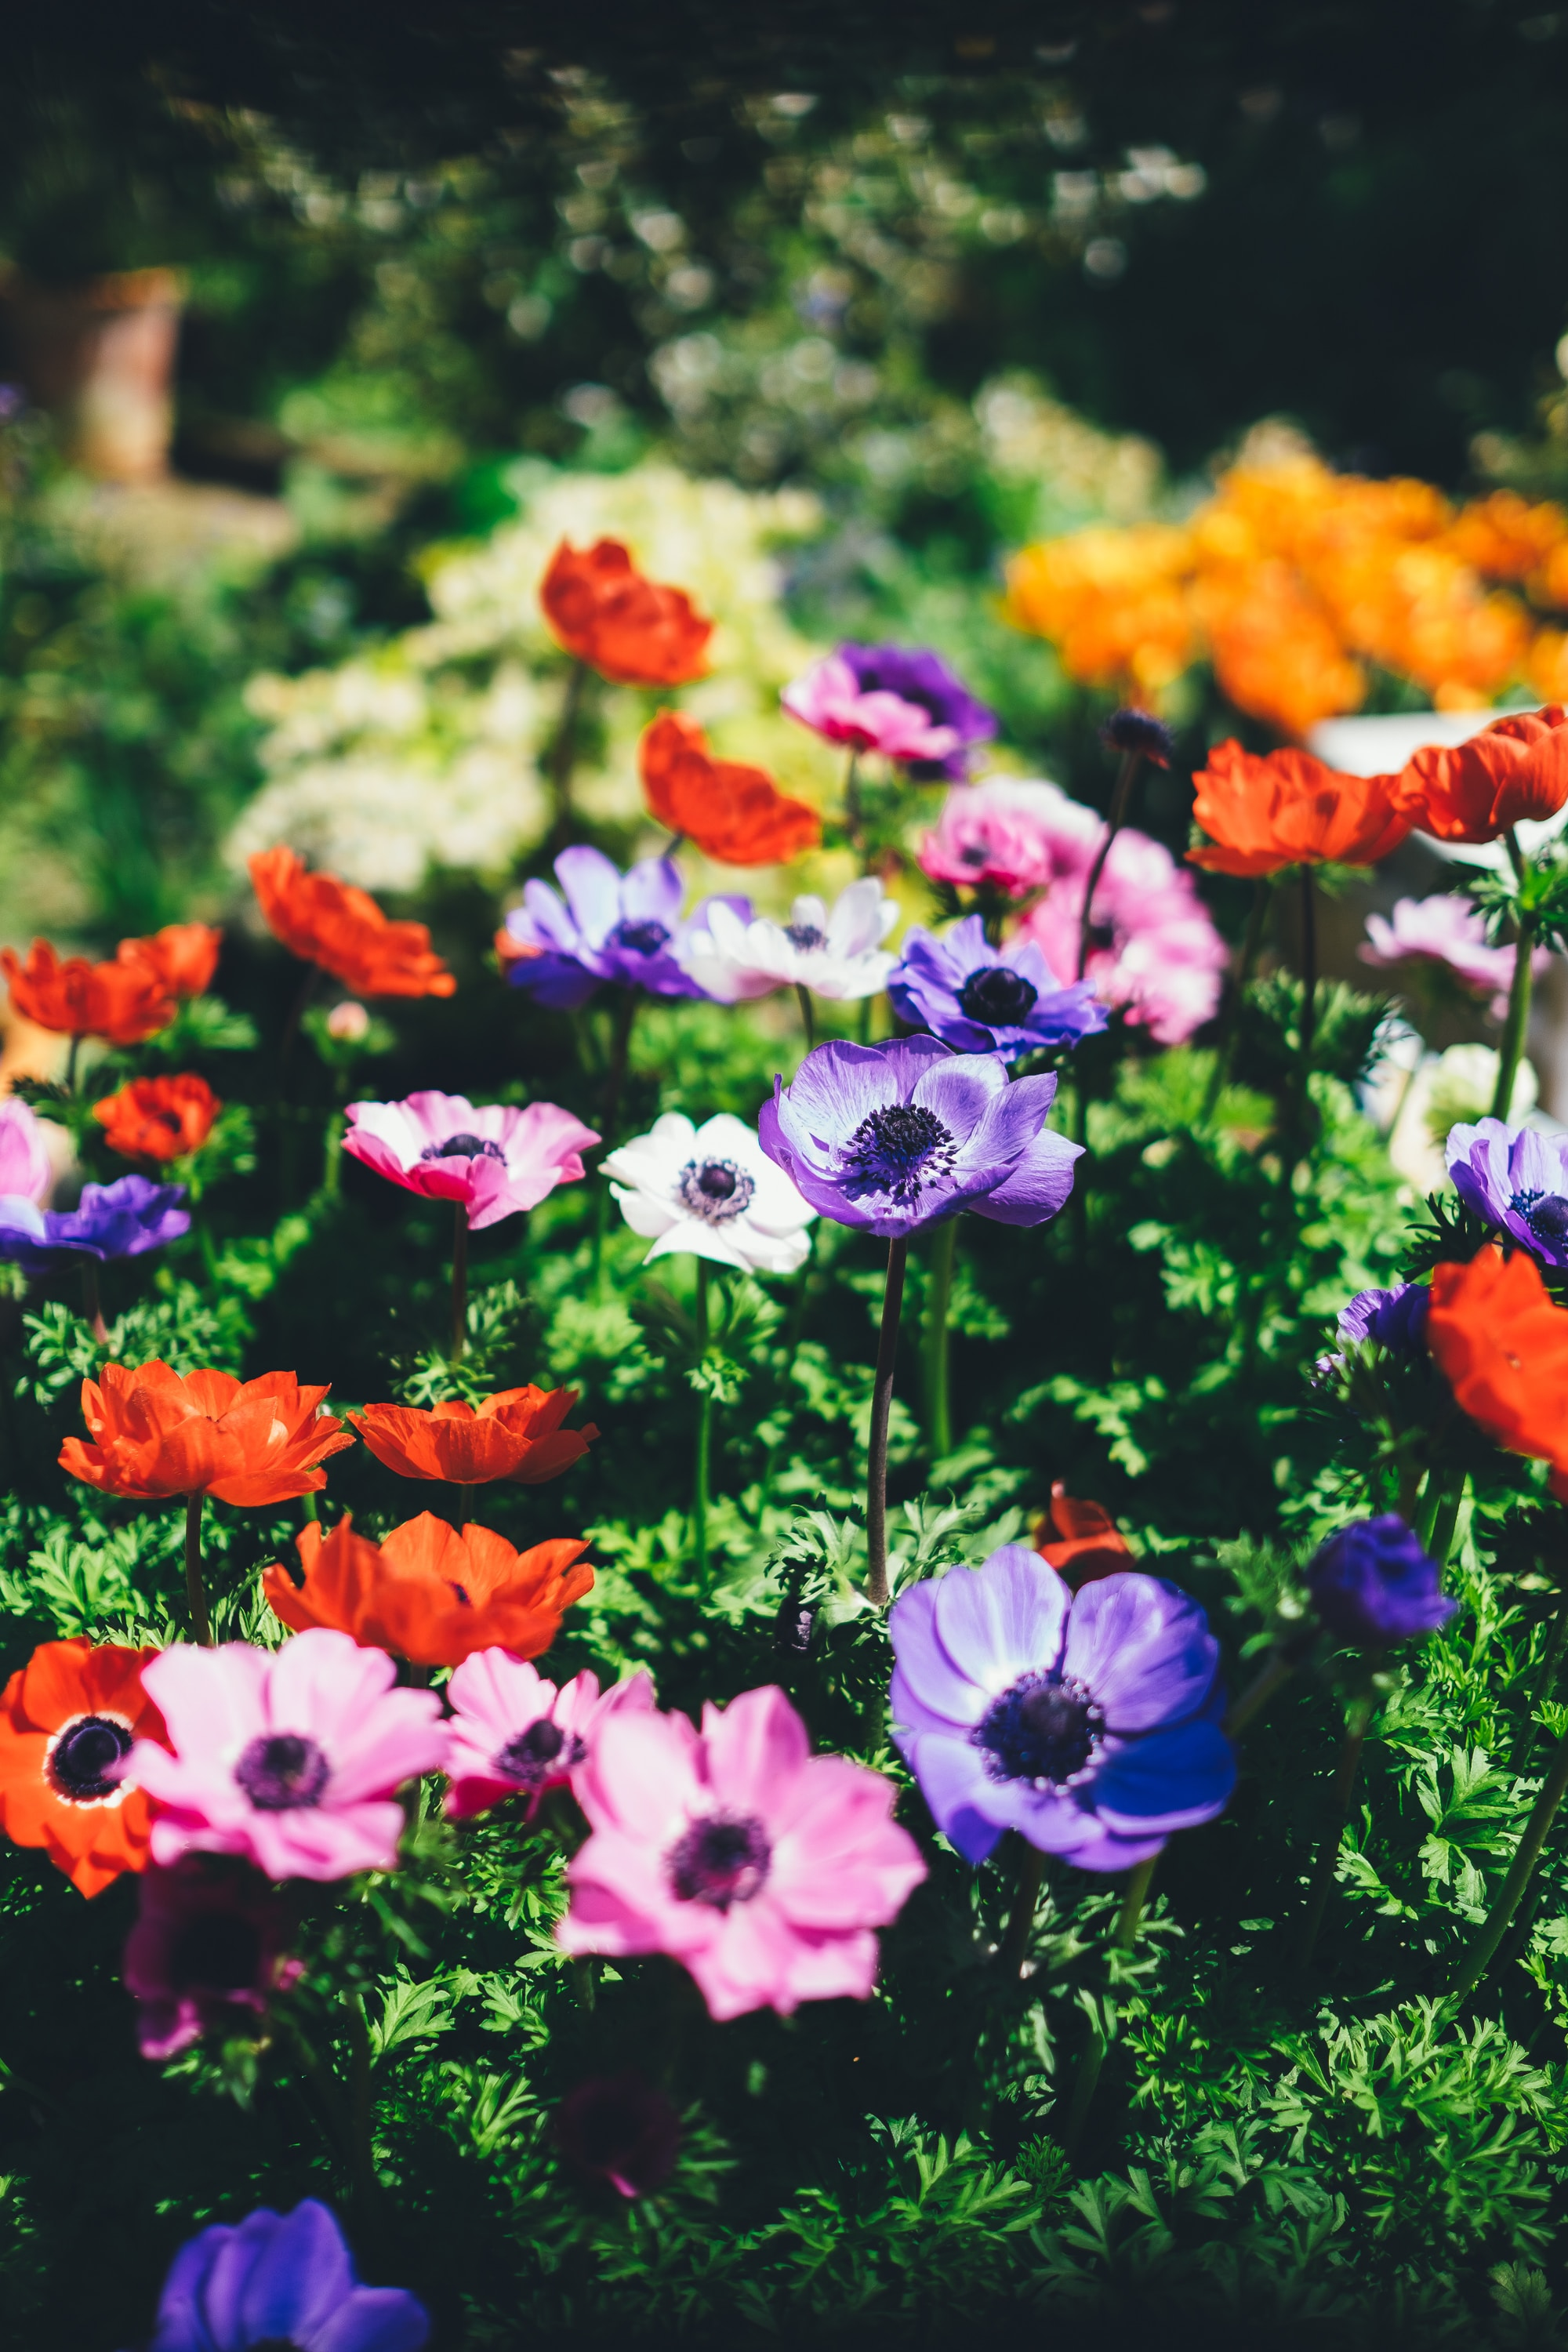 Chasing happiness in gardens